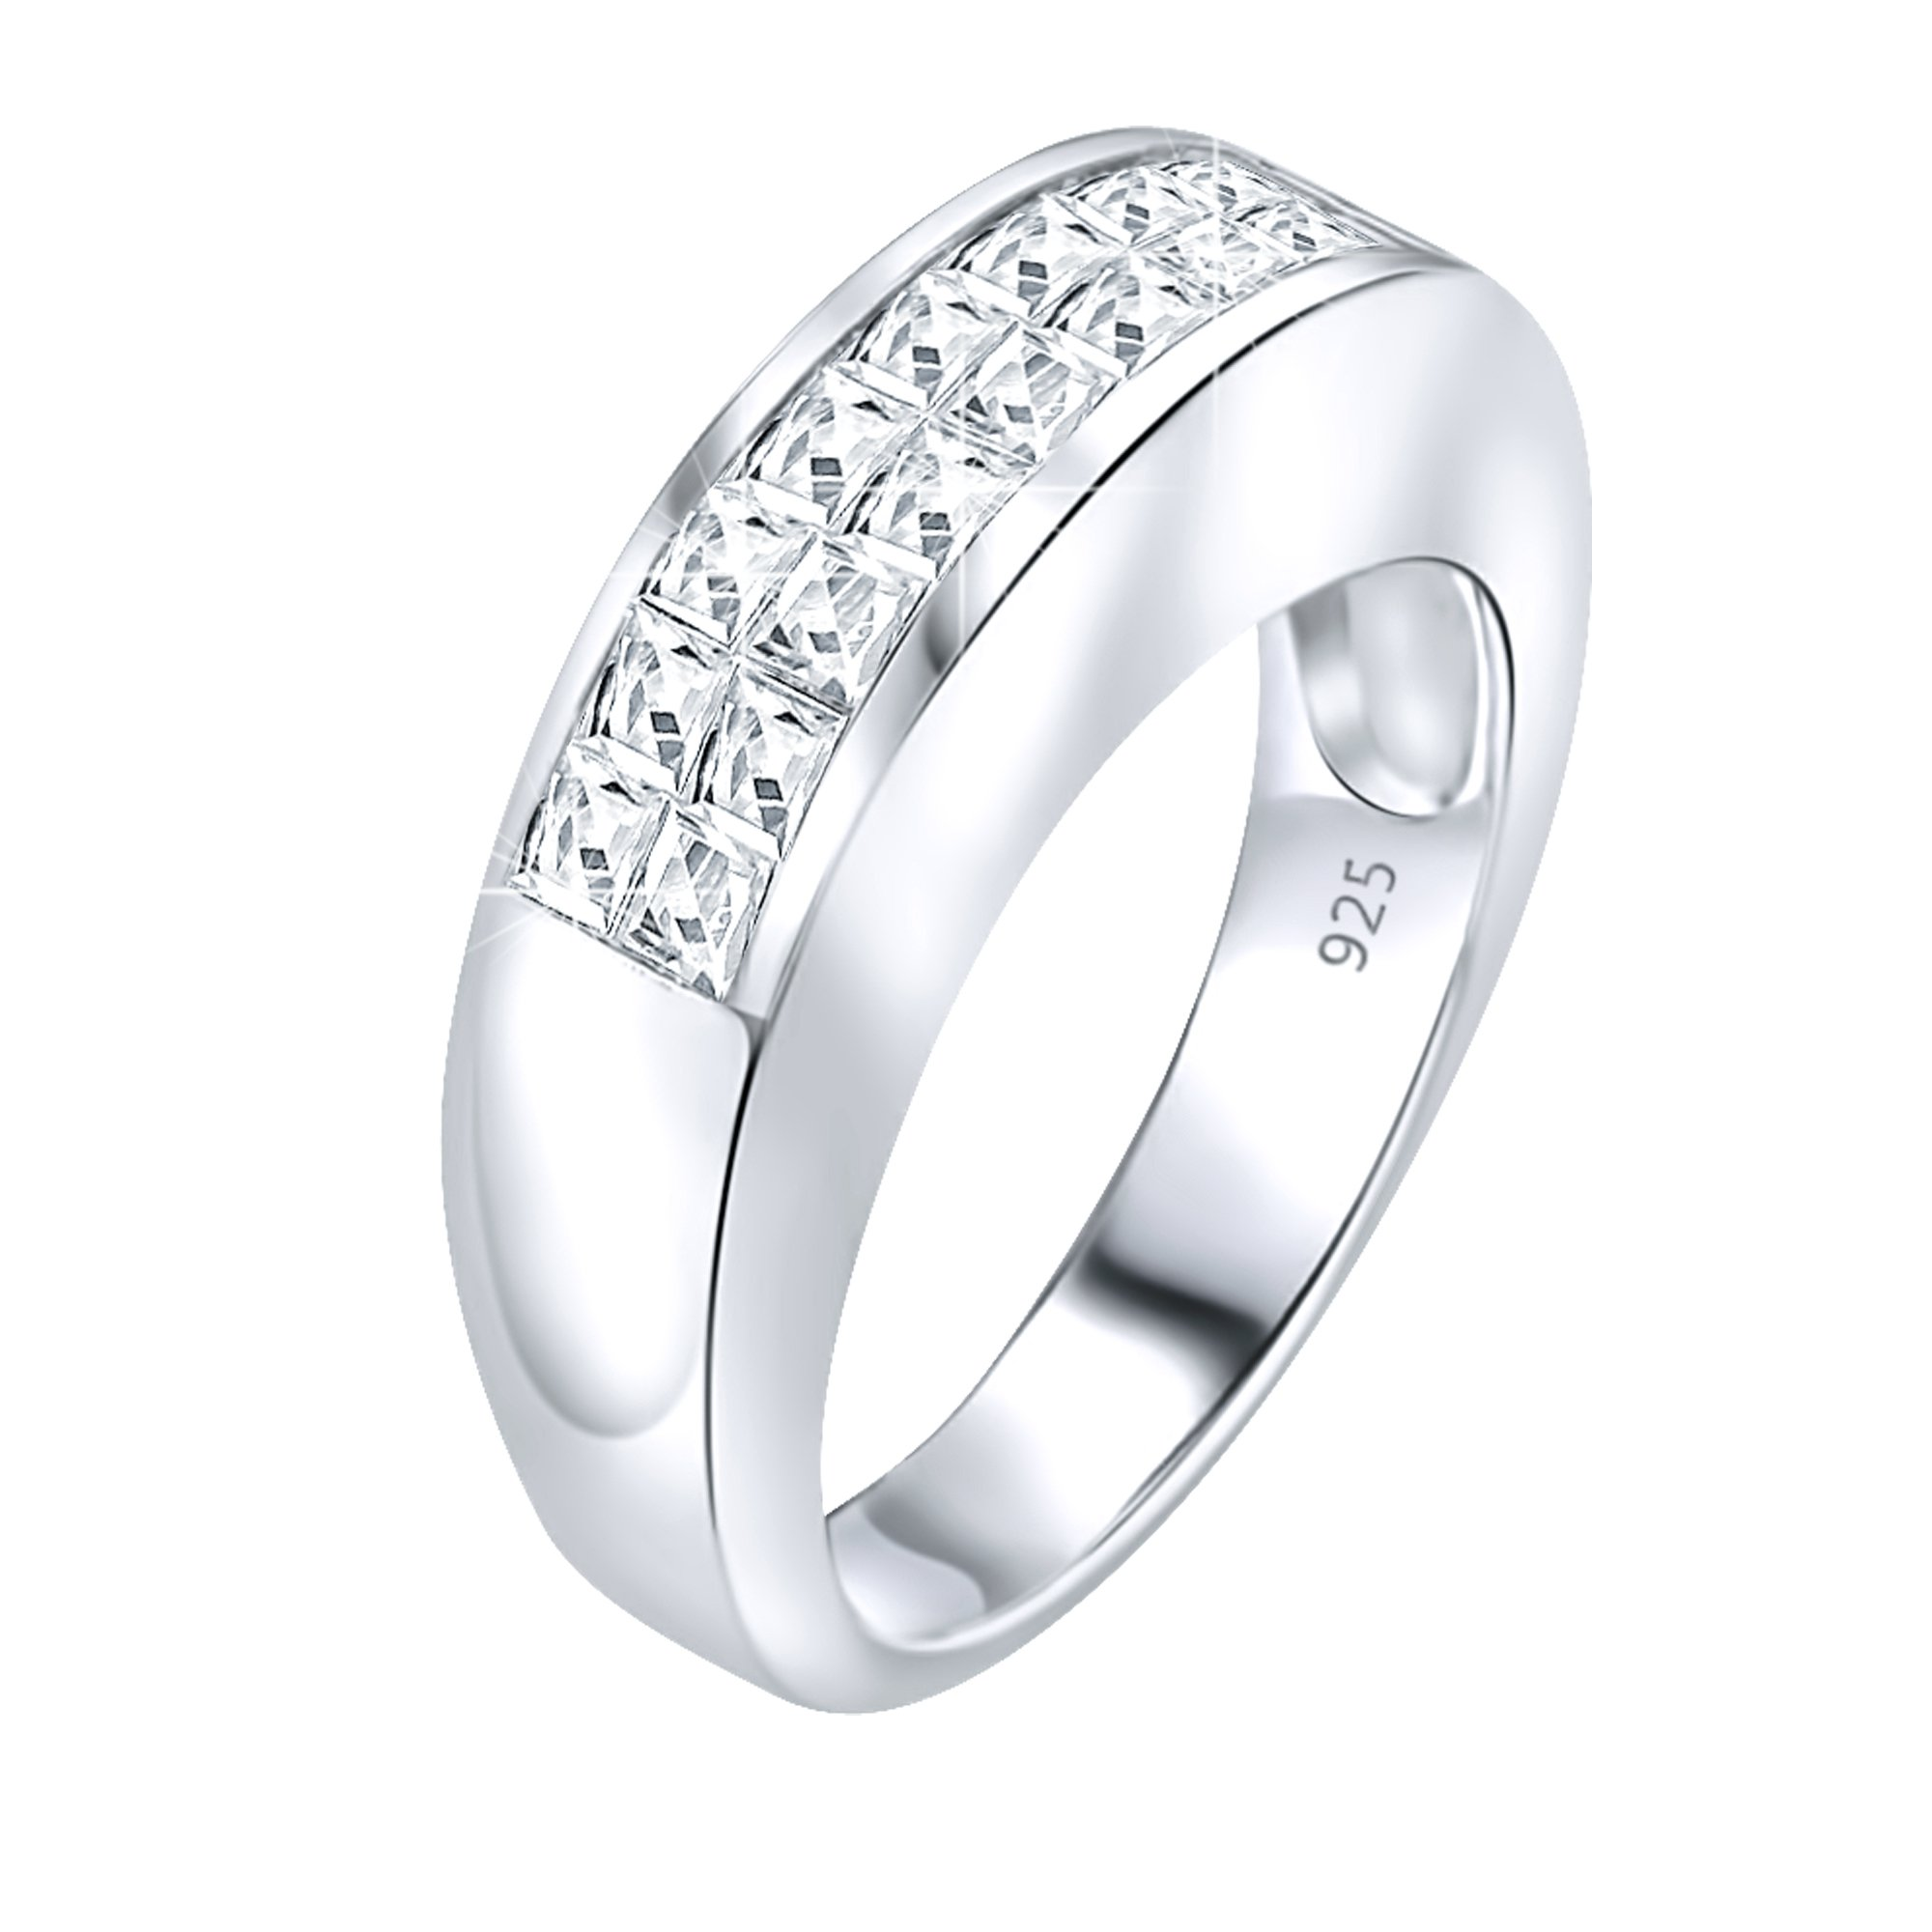 Sterling Silver .925 Designer Wedding Ring Band with Channel-Set Cubic Zirconia (CZ) Stones, Platinum Plated Jewelry. for Men and Women